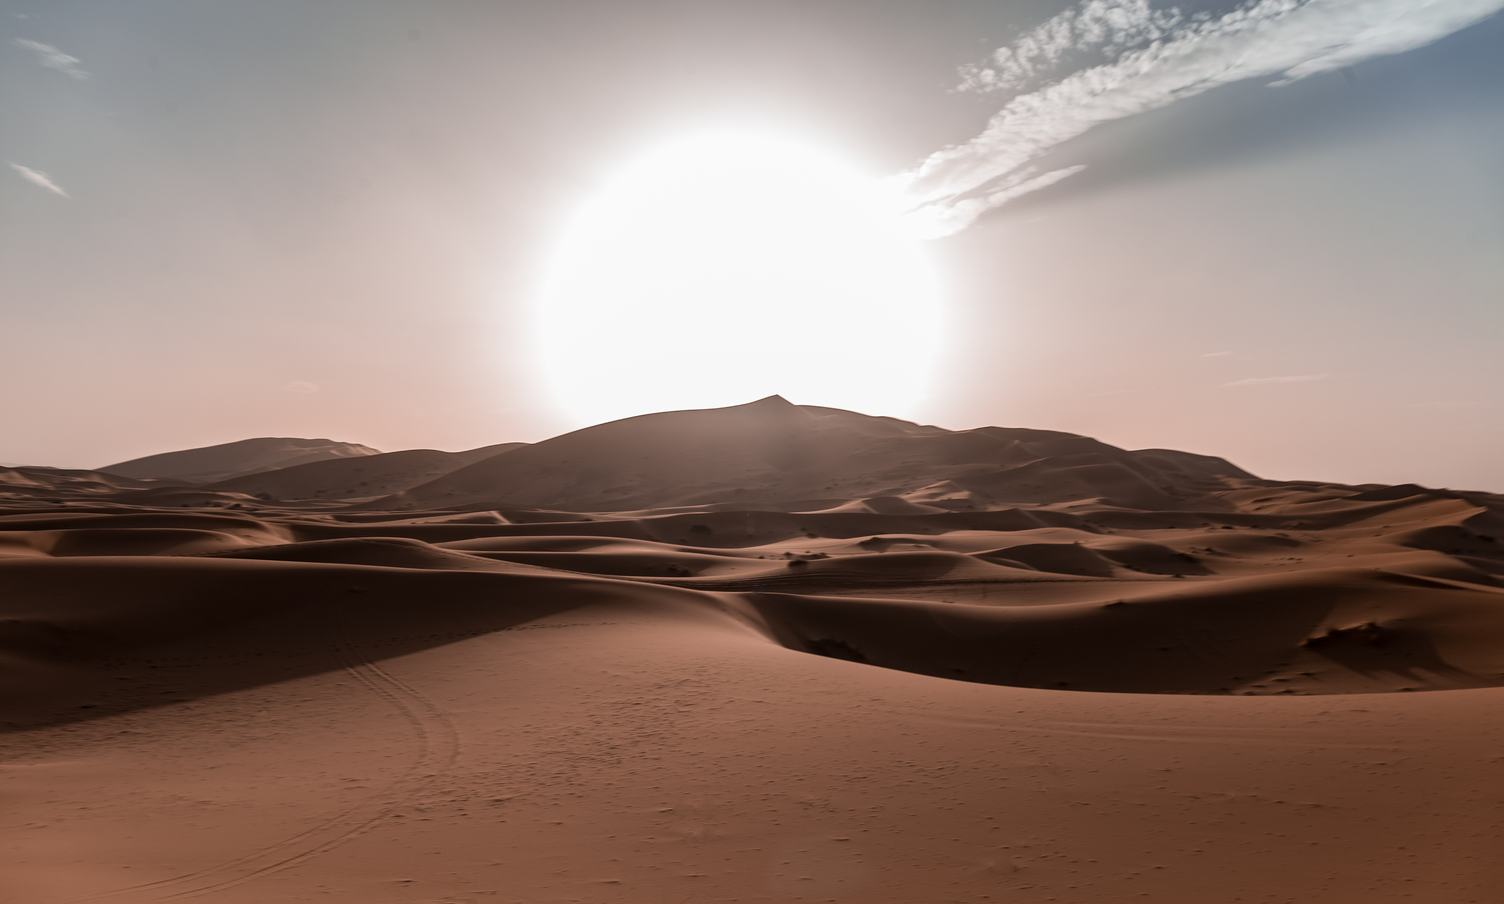 Beautiful Sand Dunes in the Desert